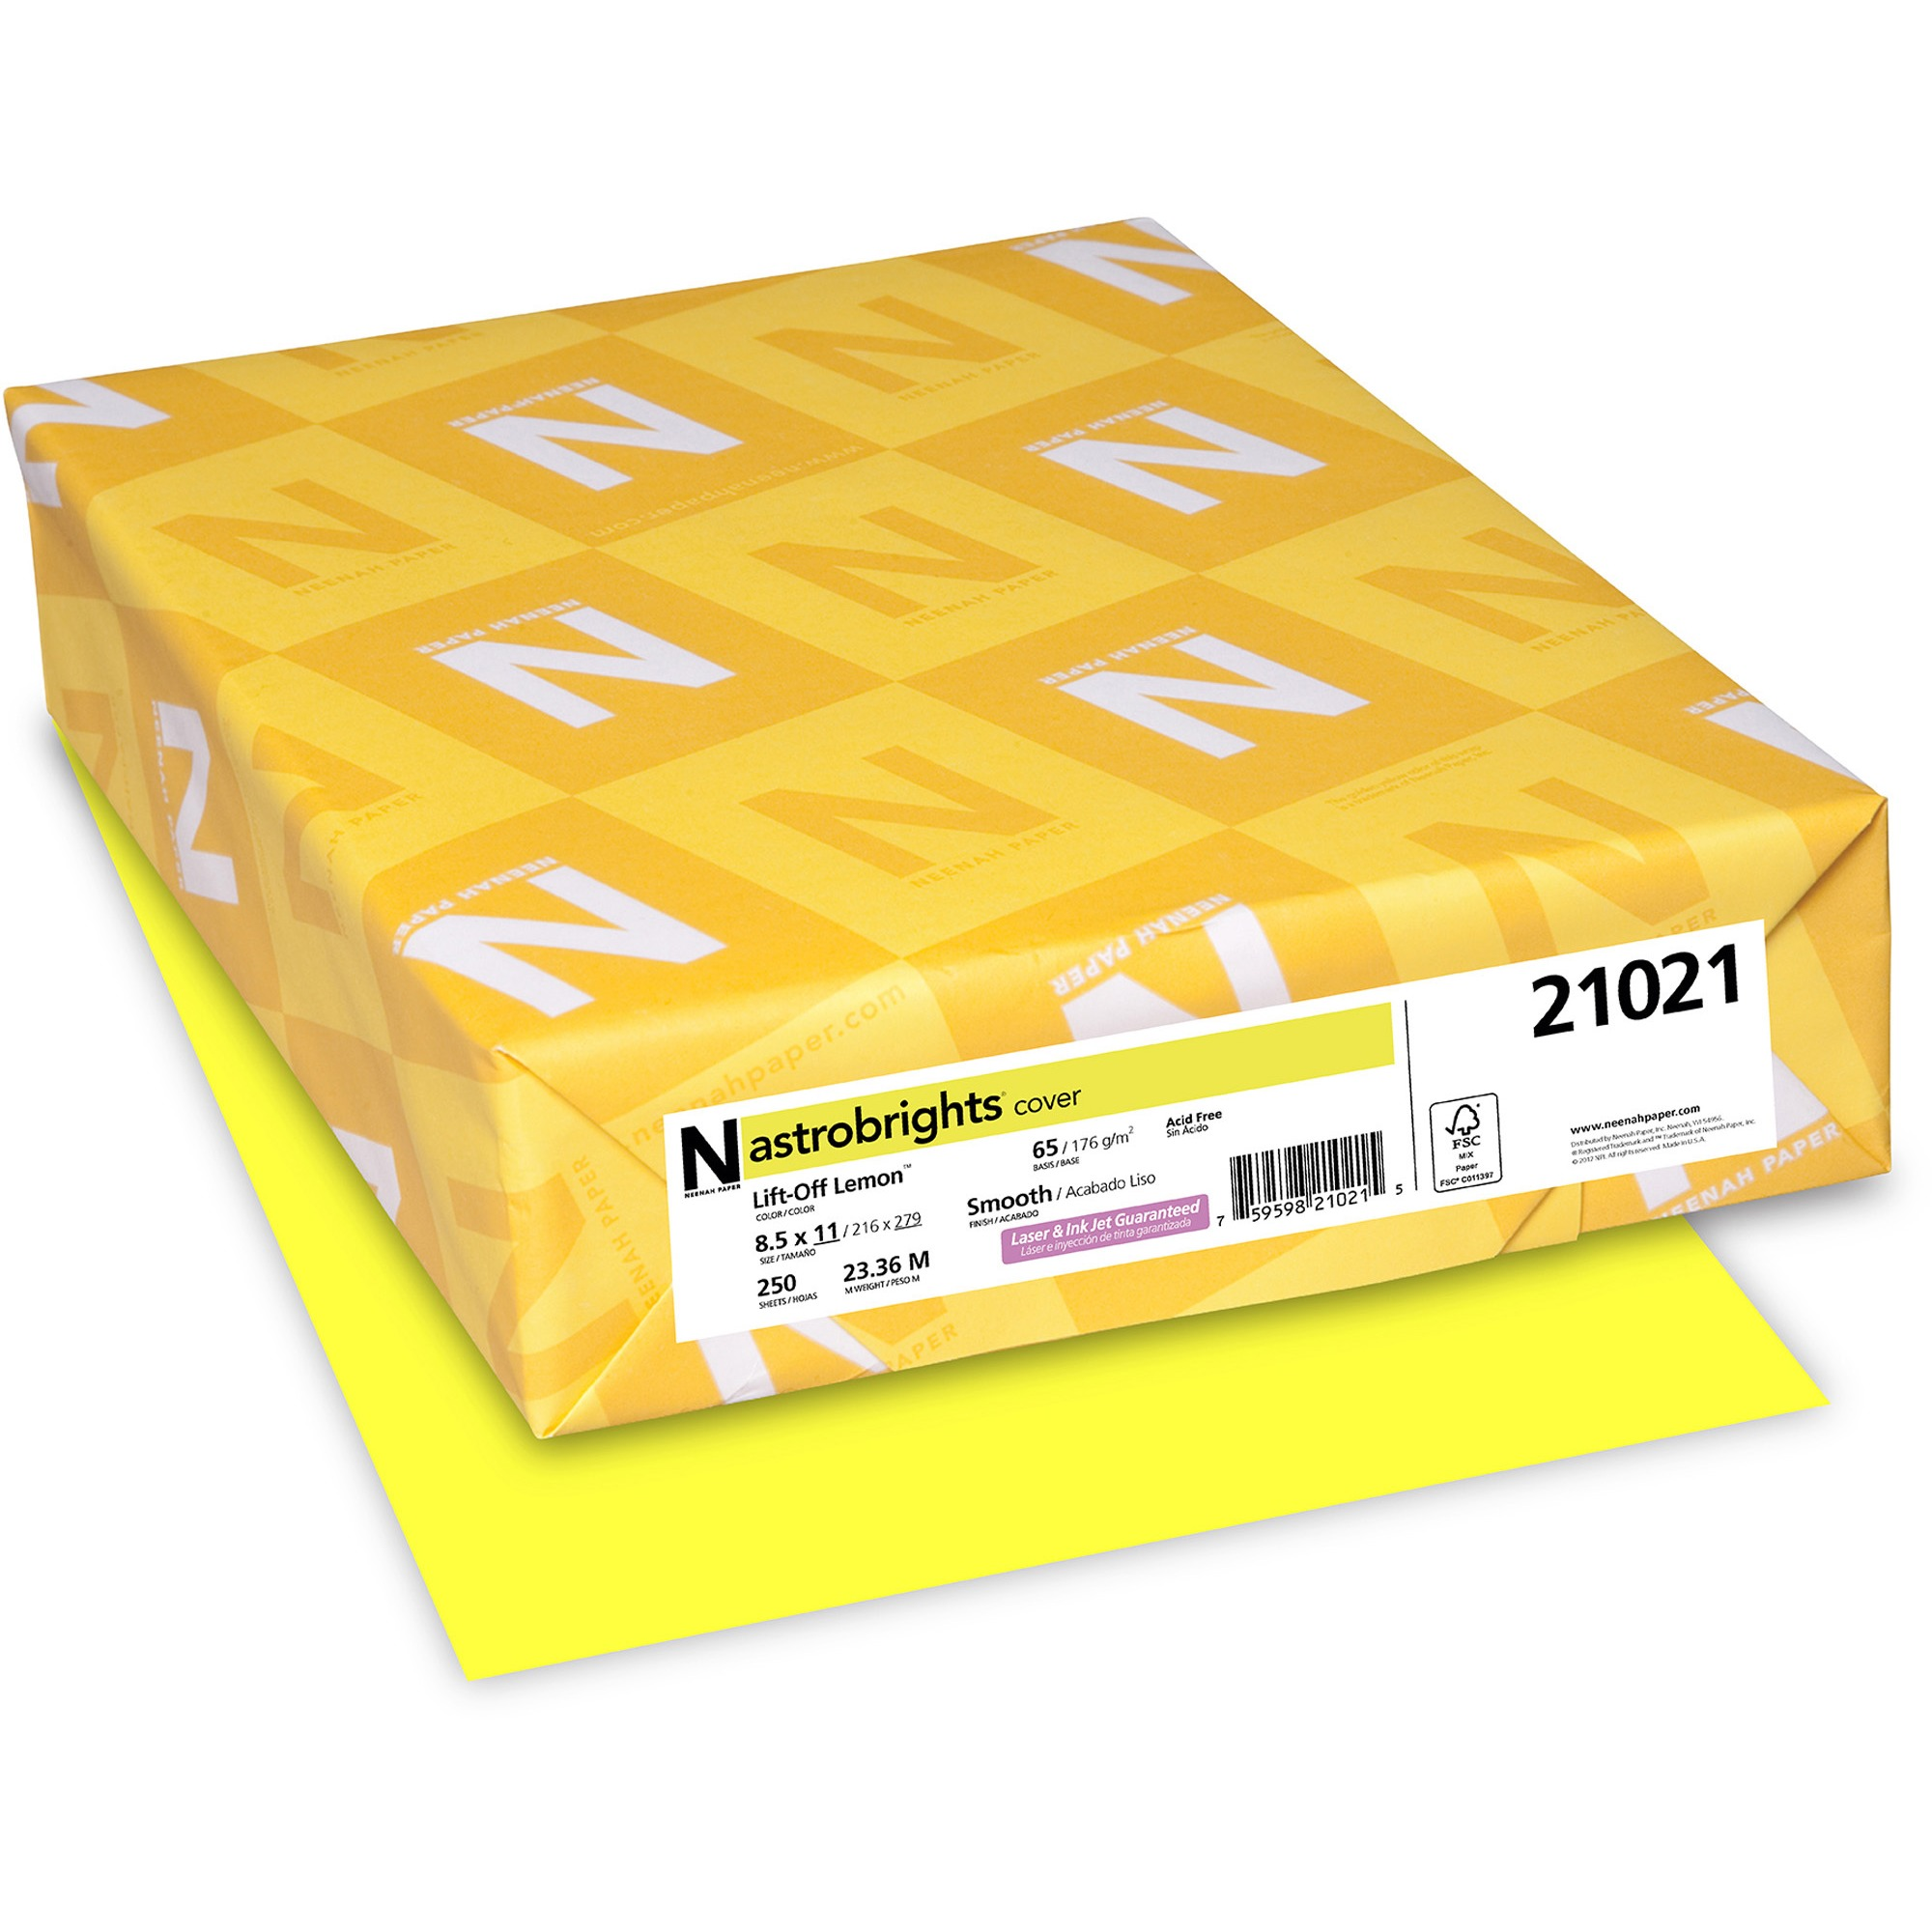 "Astrobrights Colored Cardstock, Lift-Off Lemon Yellow, 8.5"" X 11"", 250 Count"